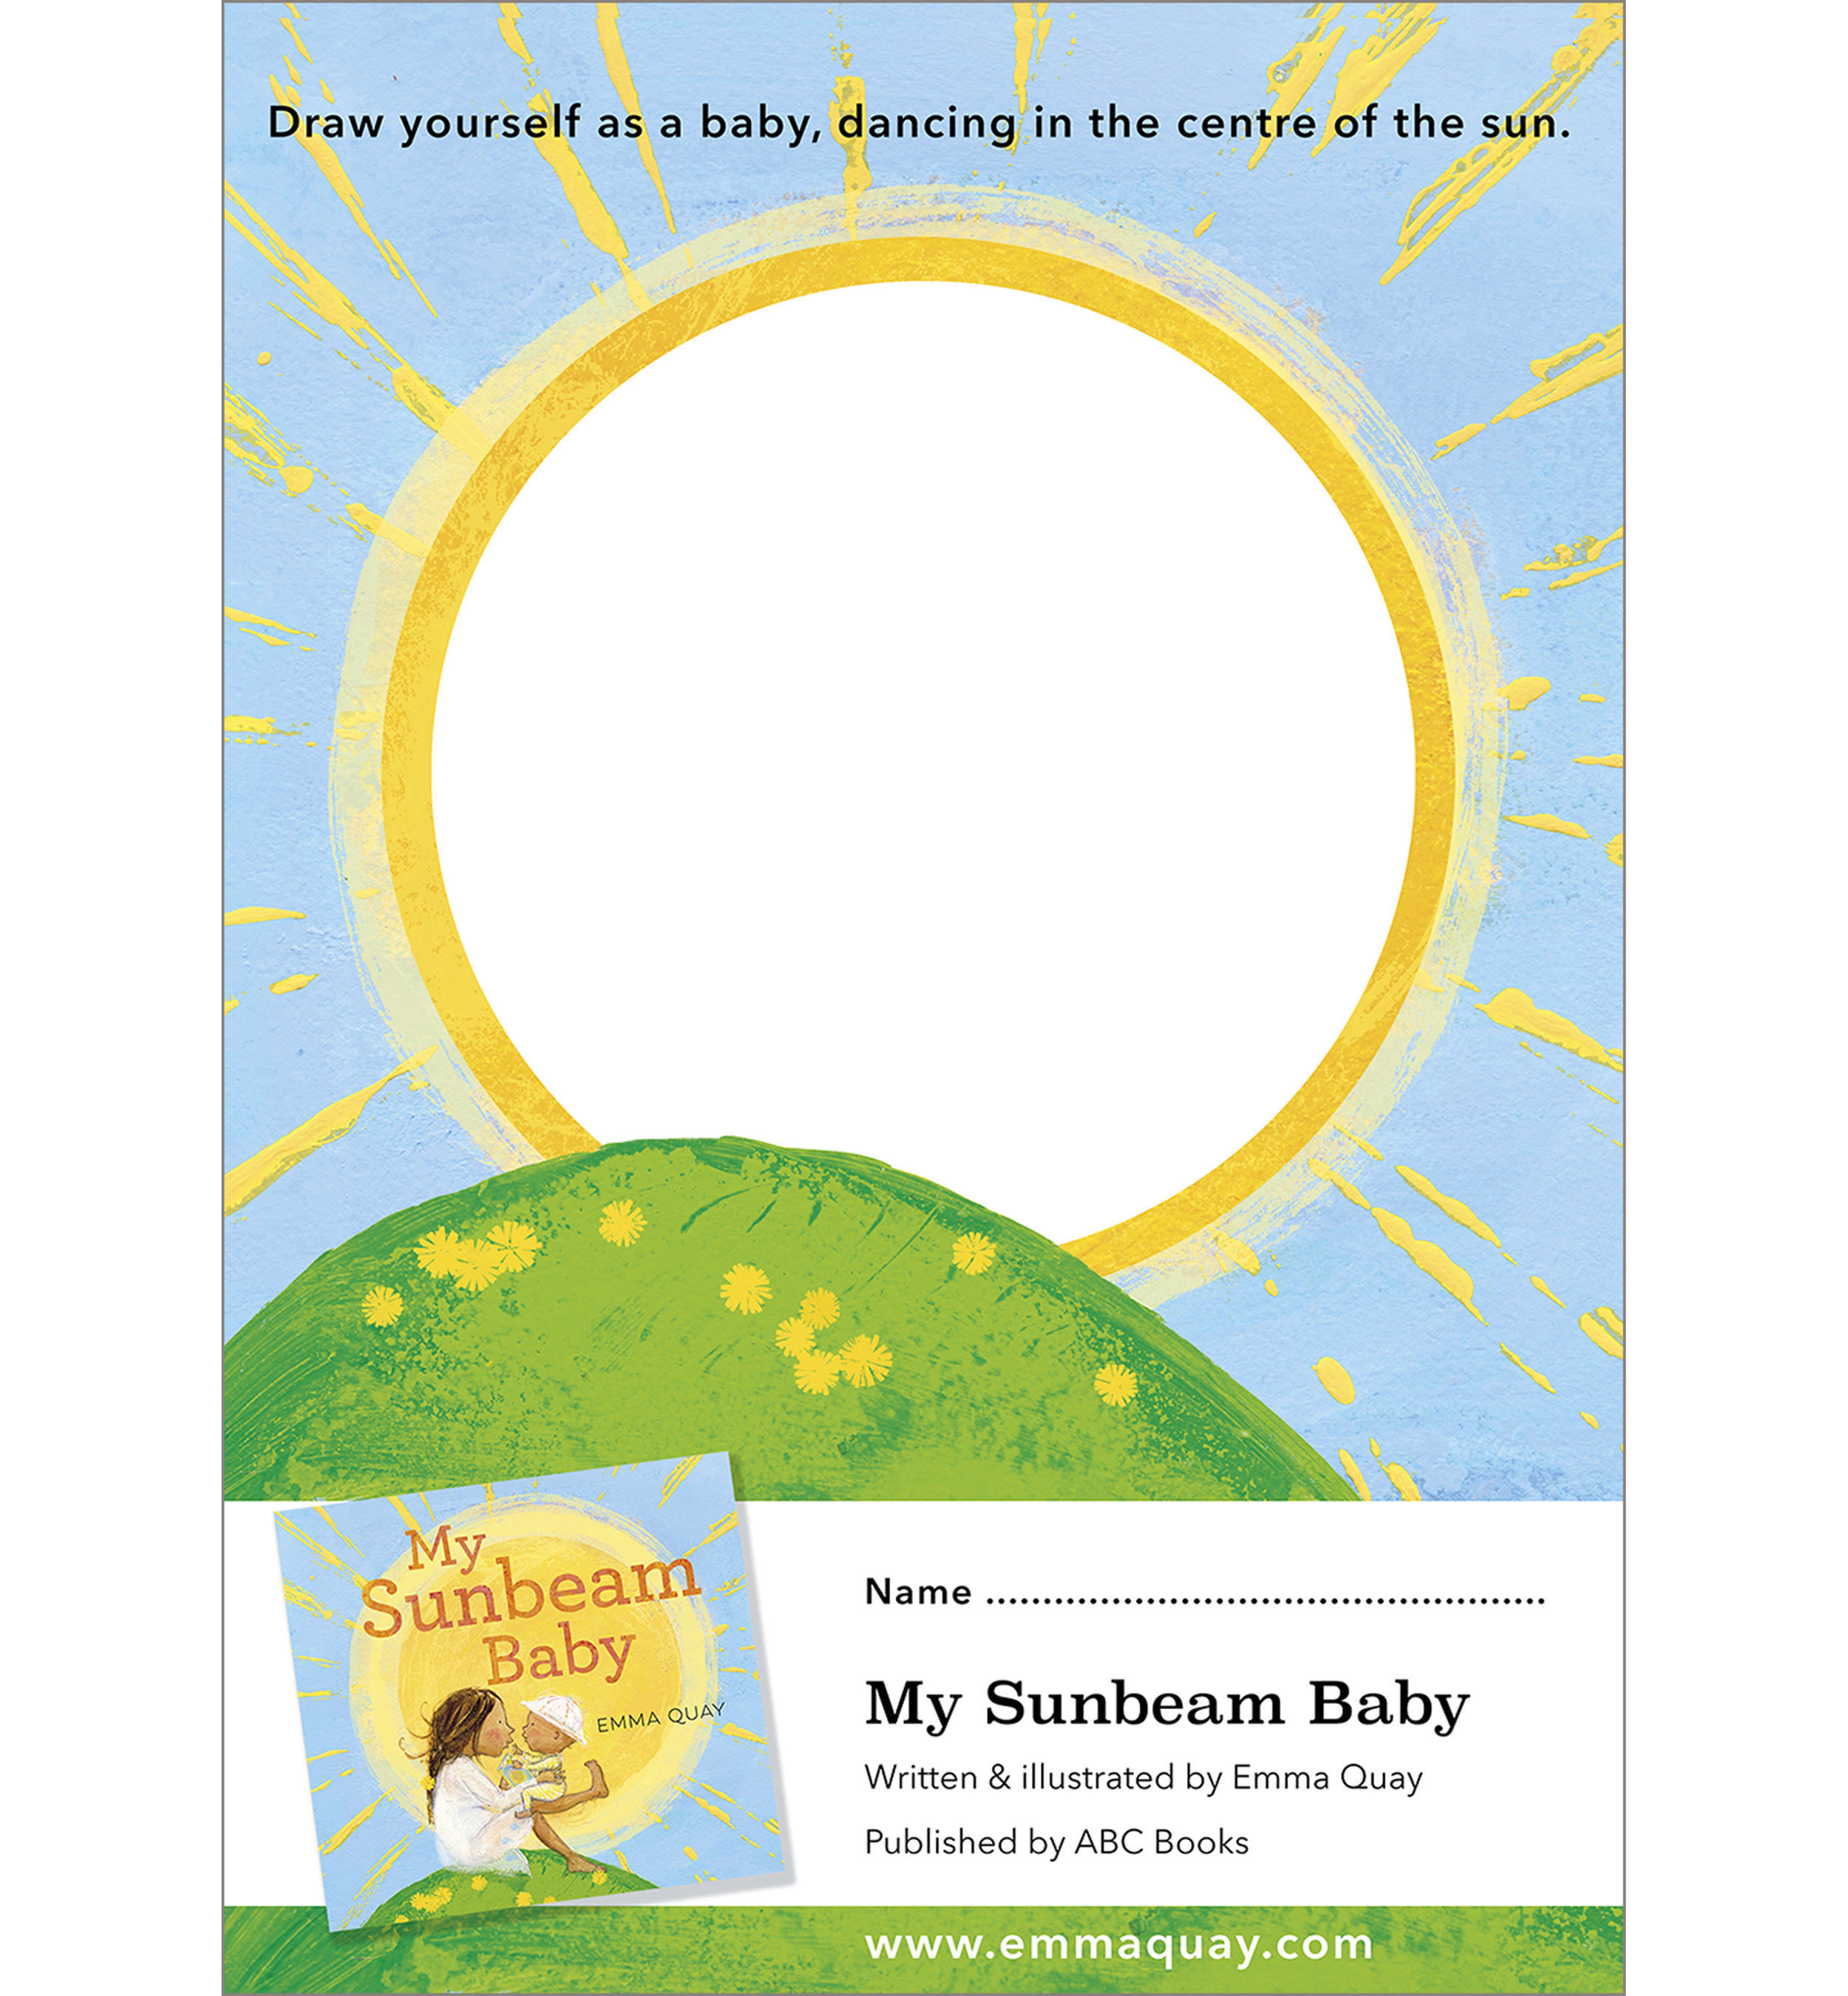 MY SUNBEAM BABY drawing activity • http://www.emmaquay.com